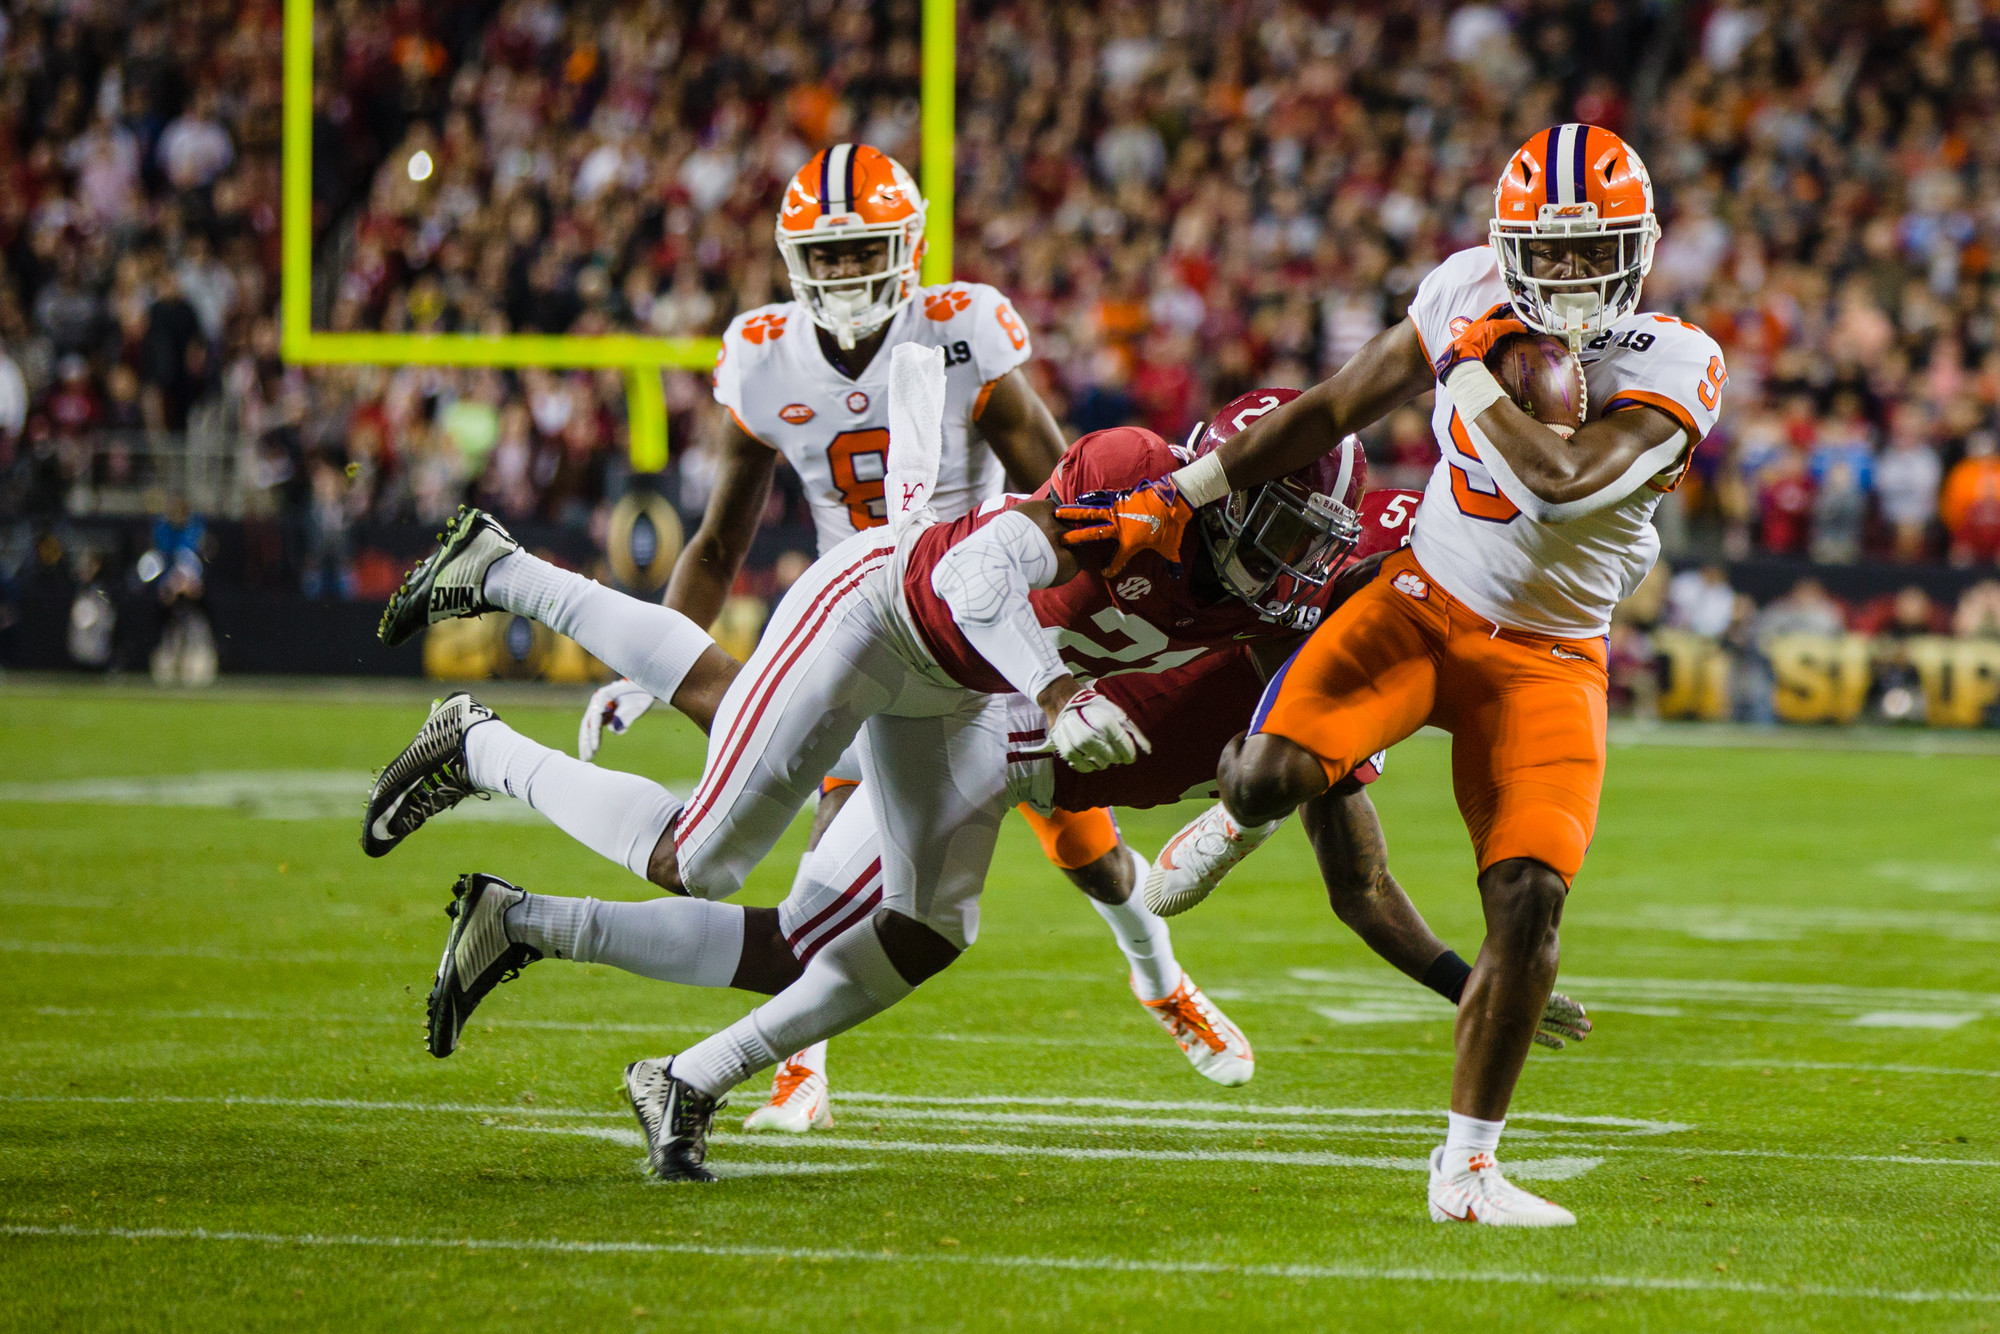 Clemson running back Travis Etienne makes a play during the 2019 CFP National Championship at Levi's Stadium in Santa Clara, California, on Monday, Jan. 7. The Tigers routed Alabama to win 44-16.